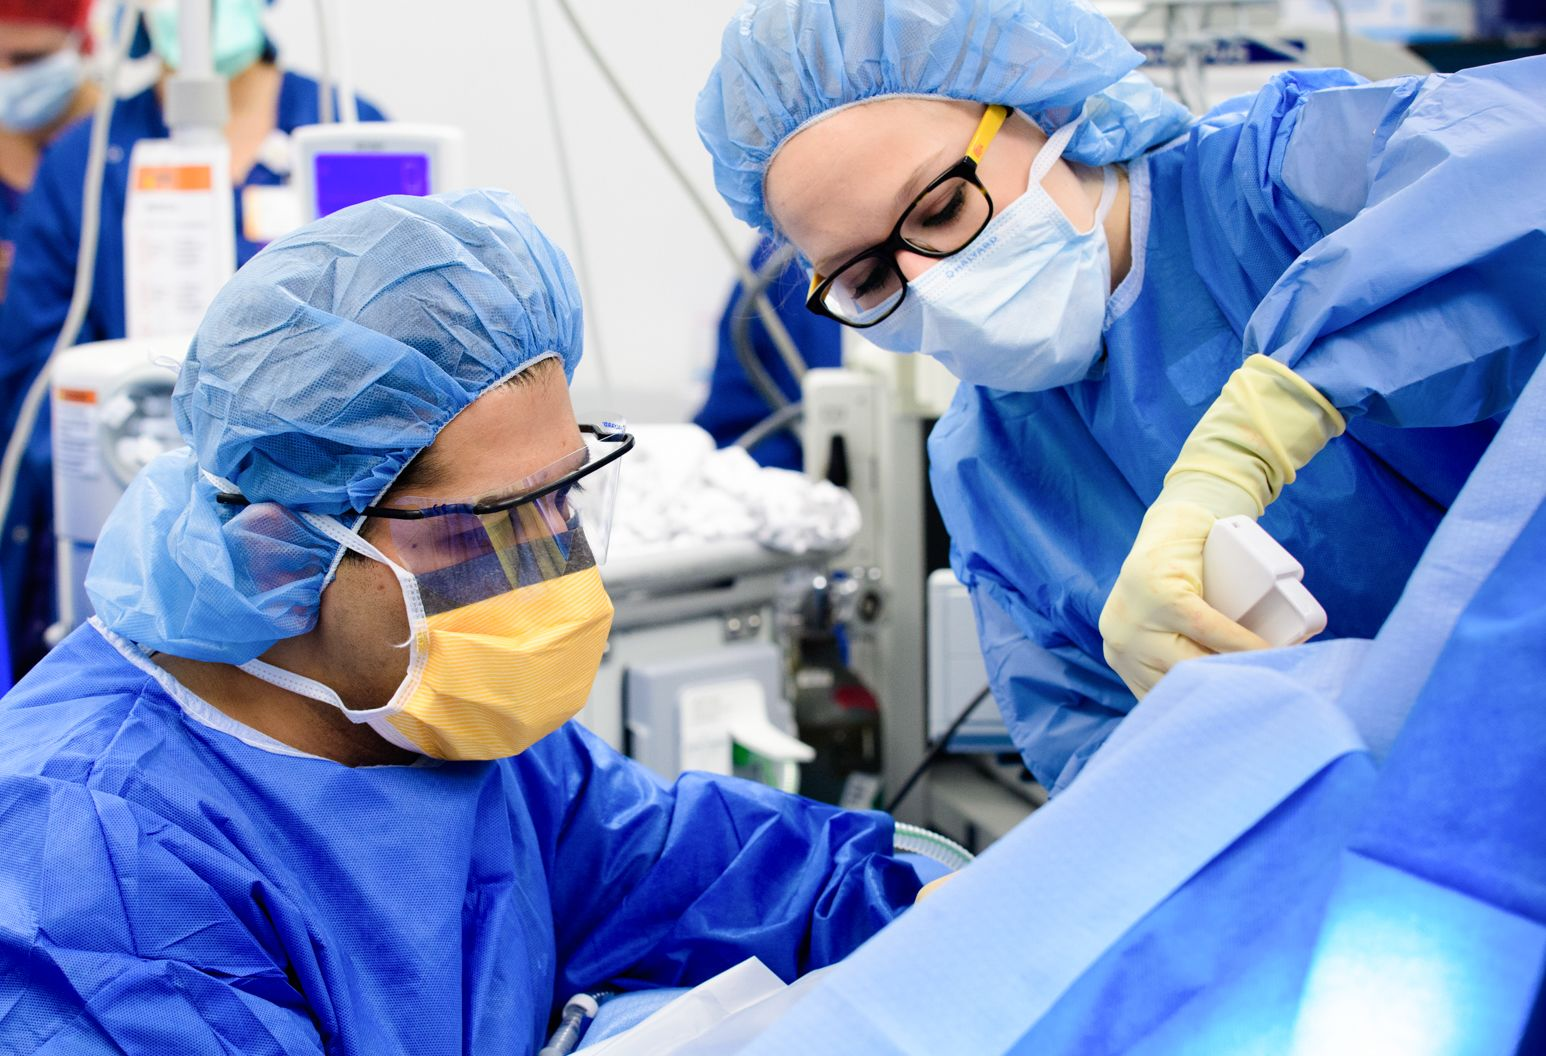 Male and woman in blue scrubs and protective face gear operate on someone under a blue cloth.